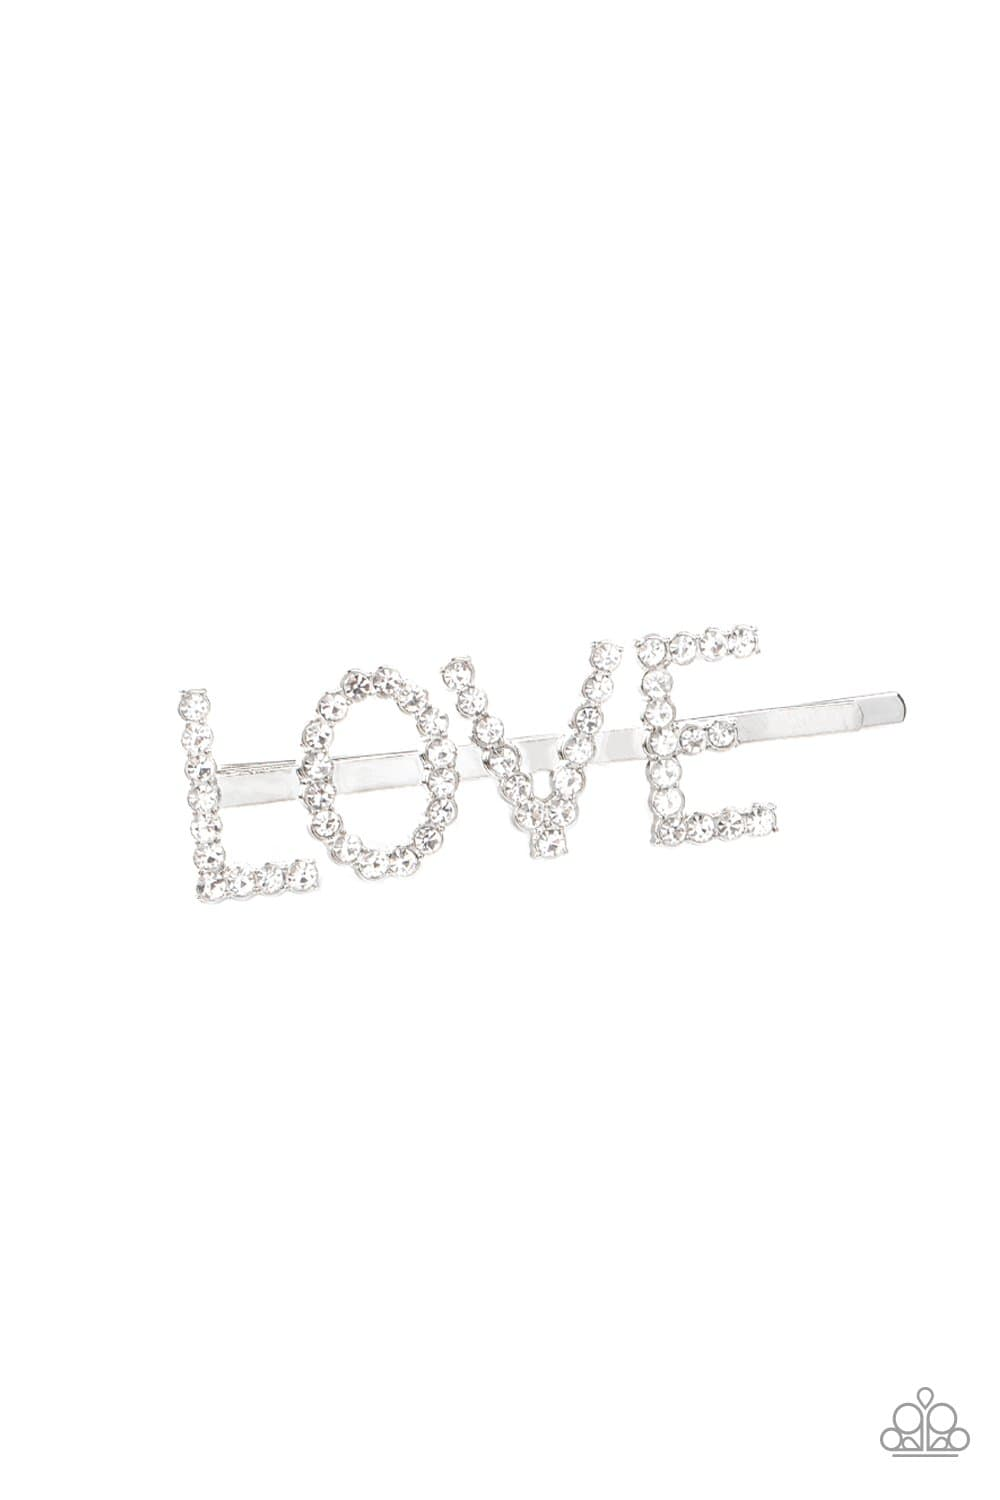 Paparazzi: All You Need Is Love - White Bobby Pin - Jewels N' Thingz Boutique